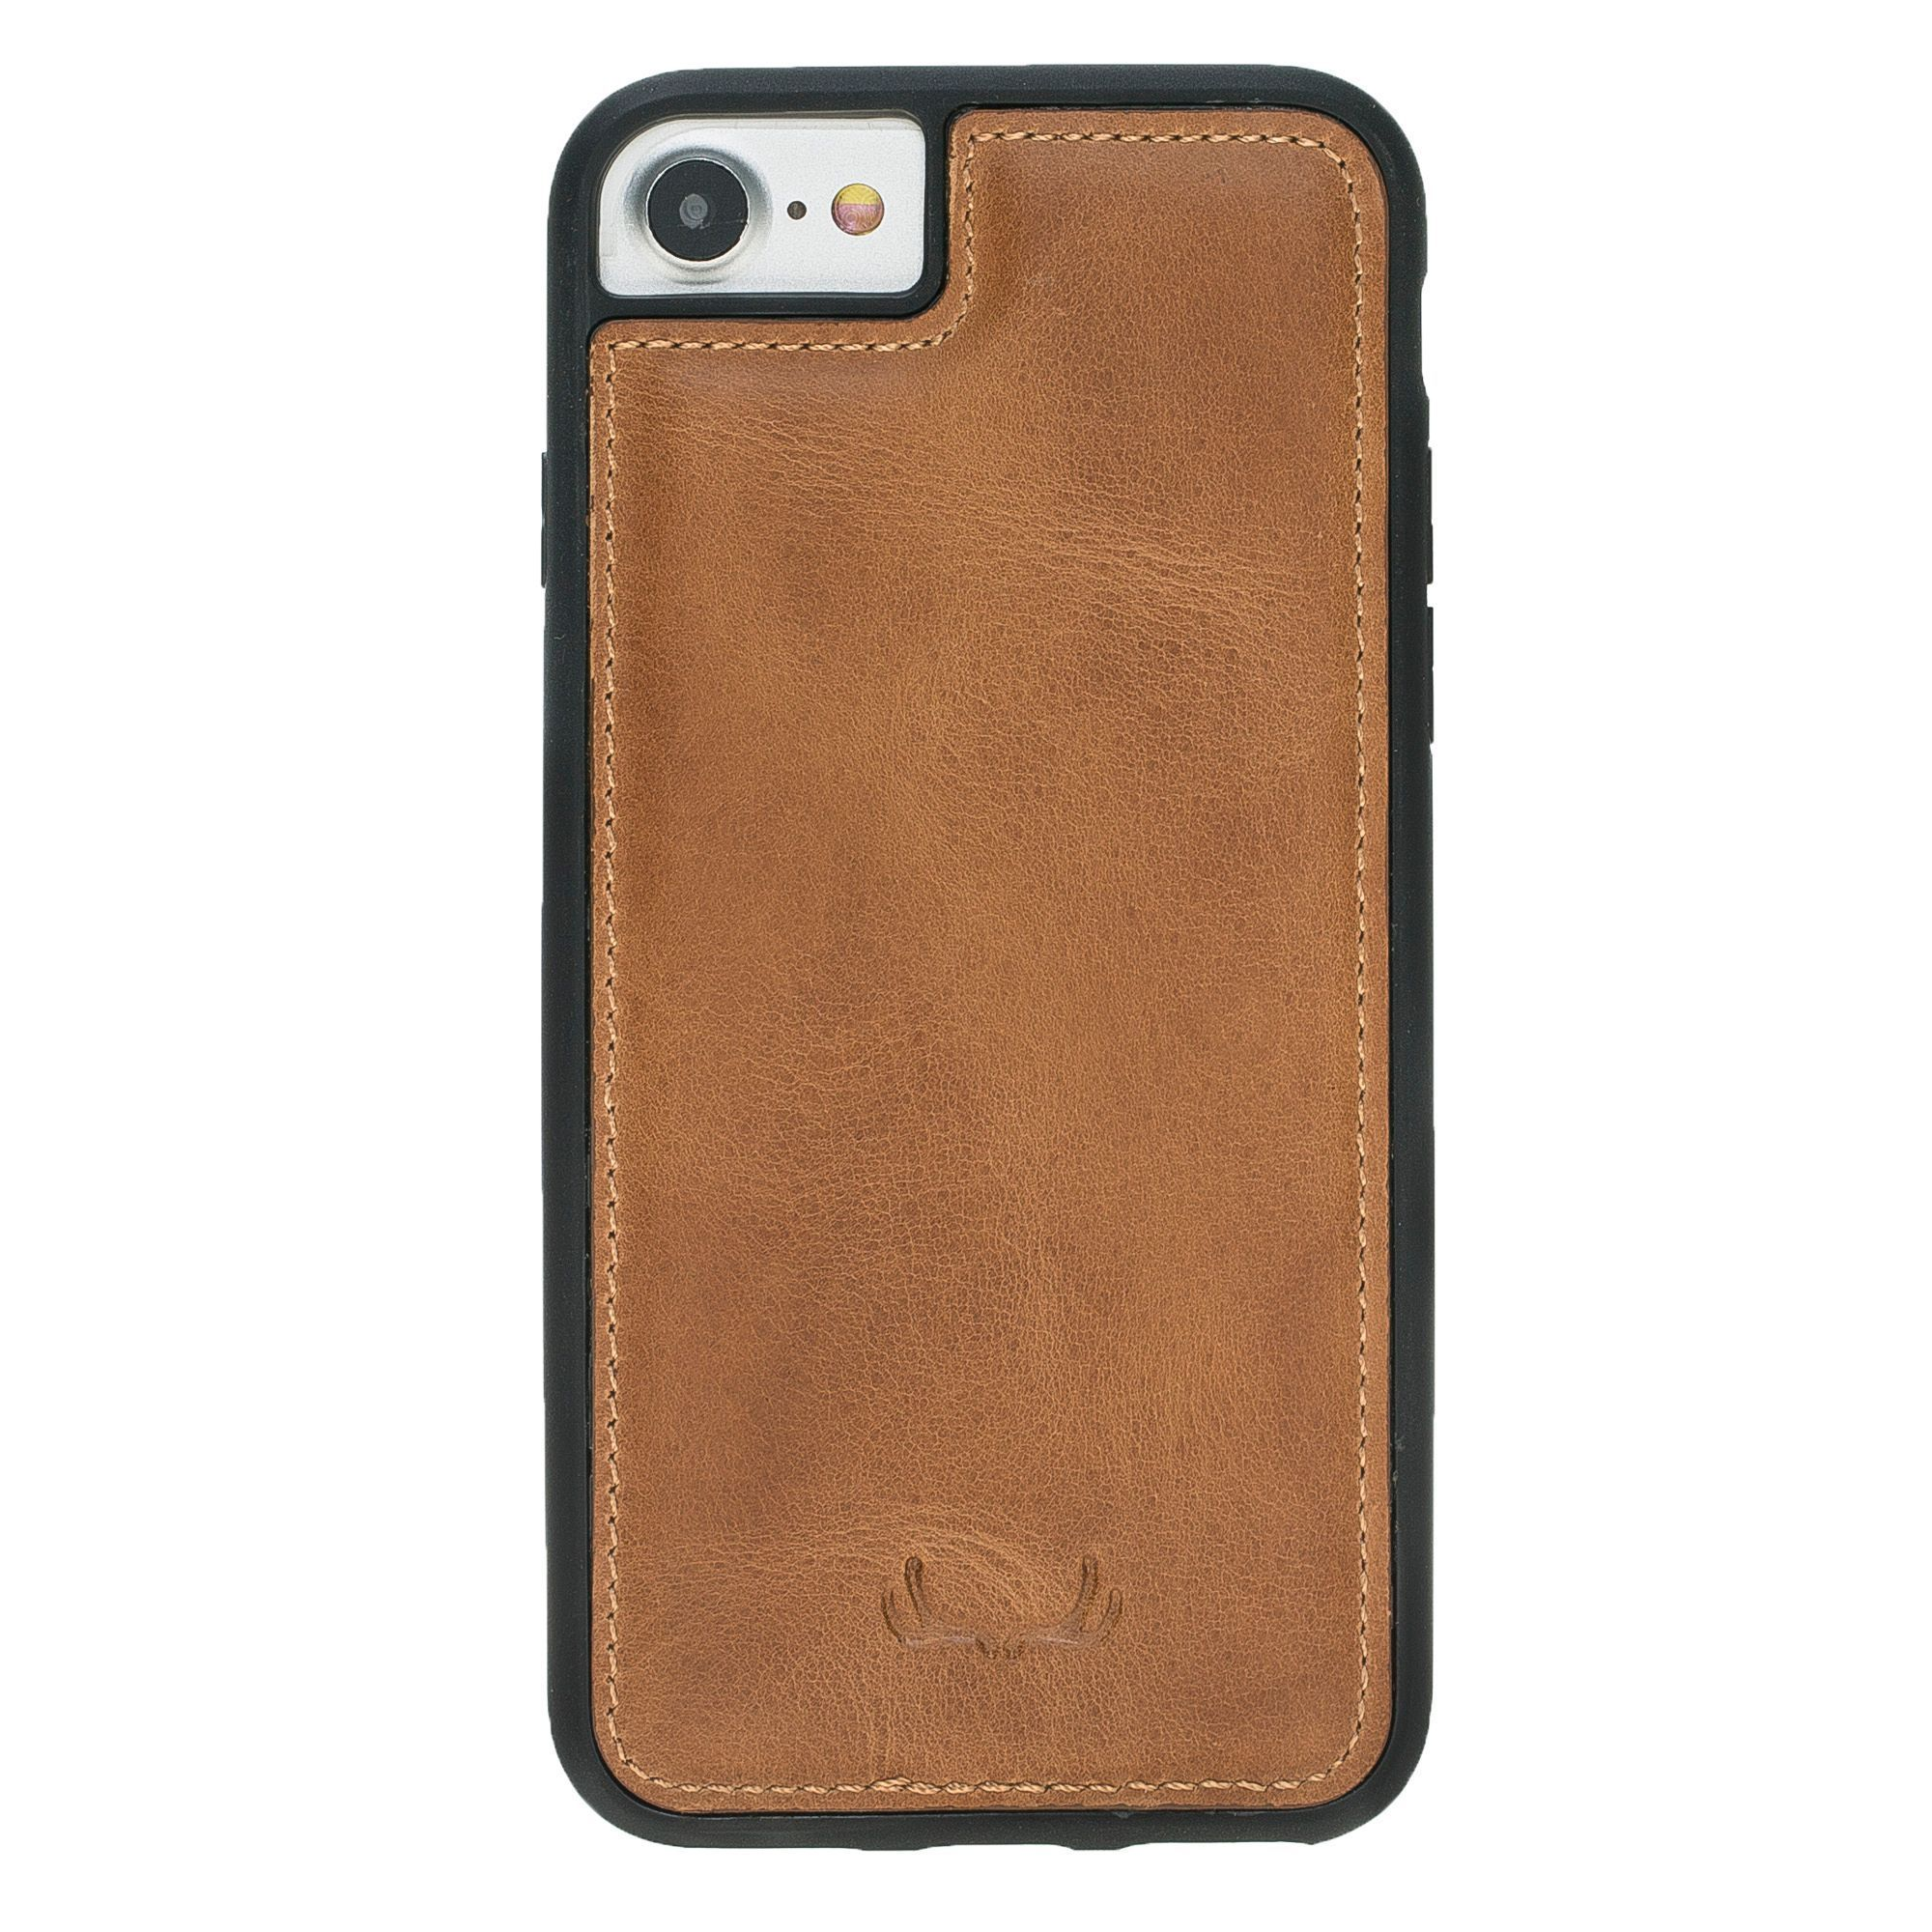 BNT Flex Cover Leather Cases - Crazy - iPhone 7/8 - Brown